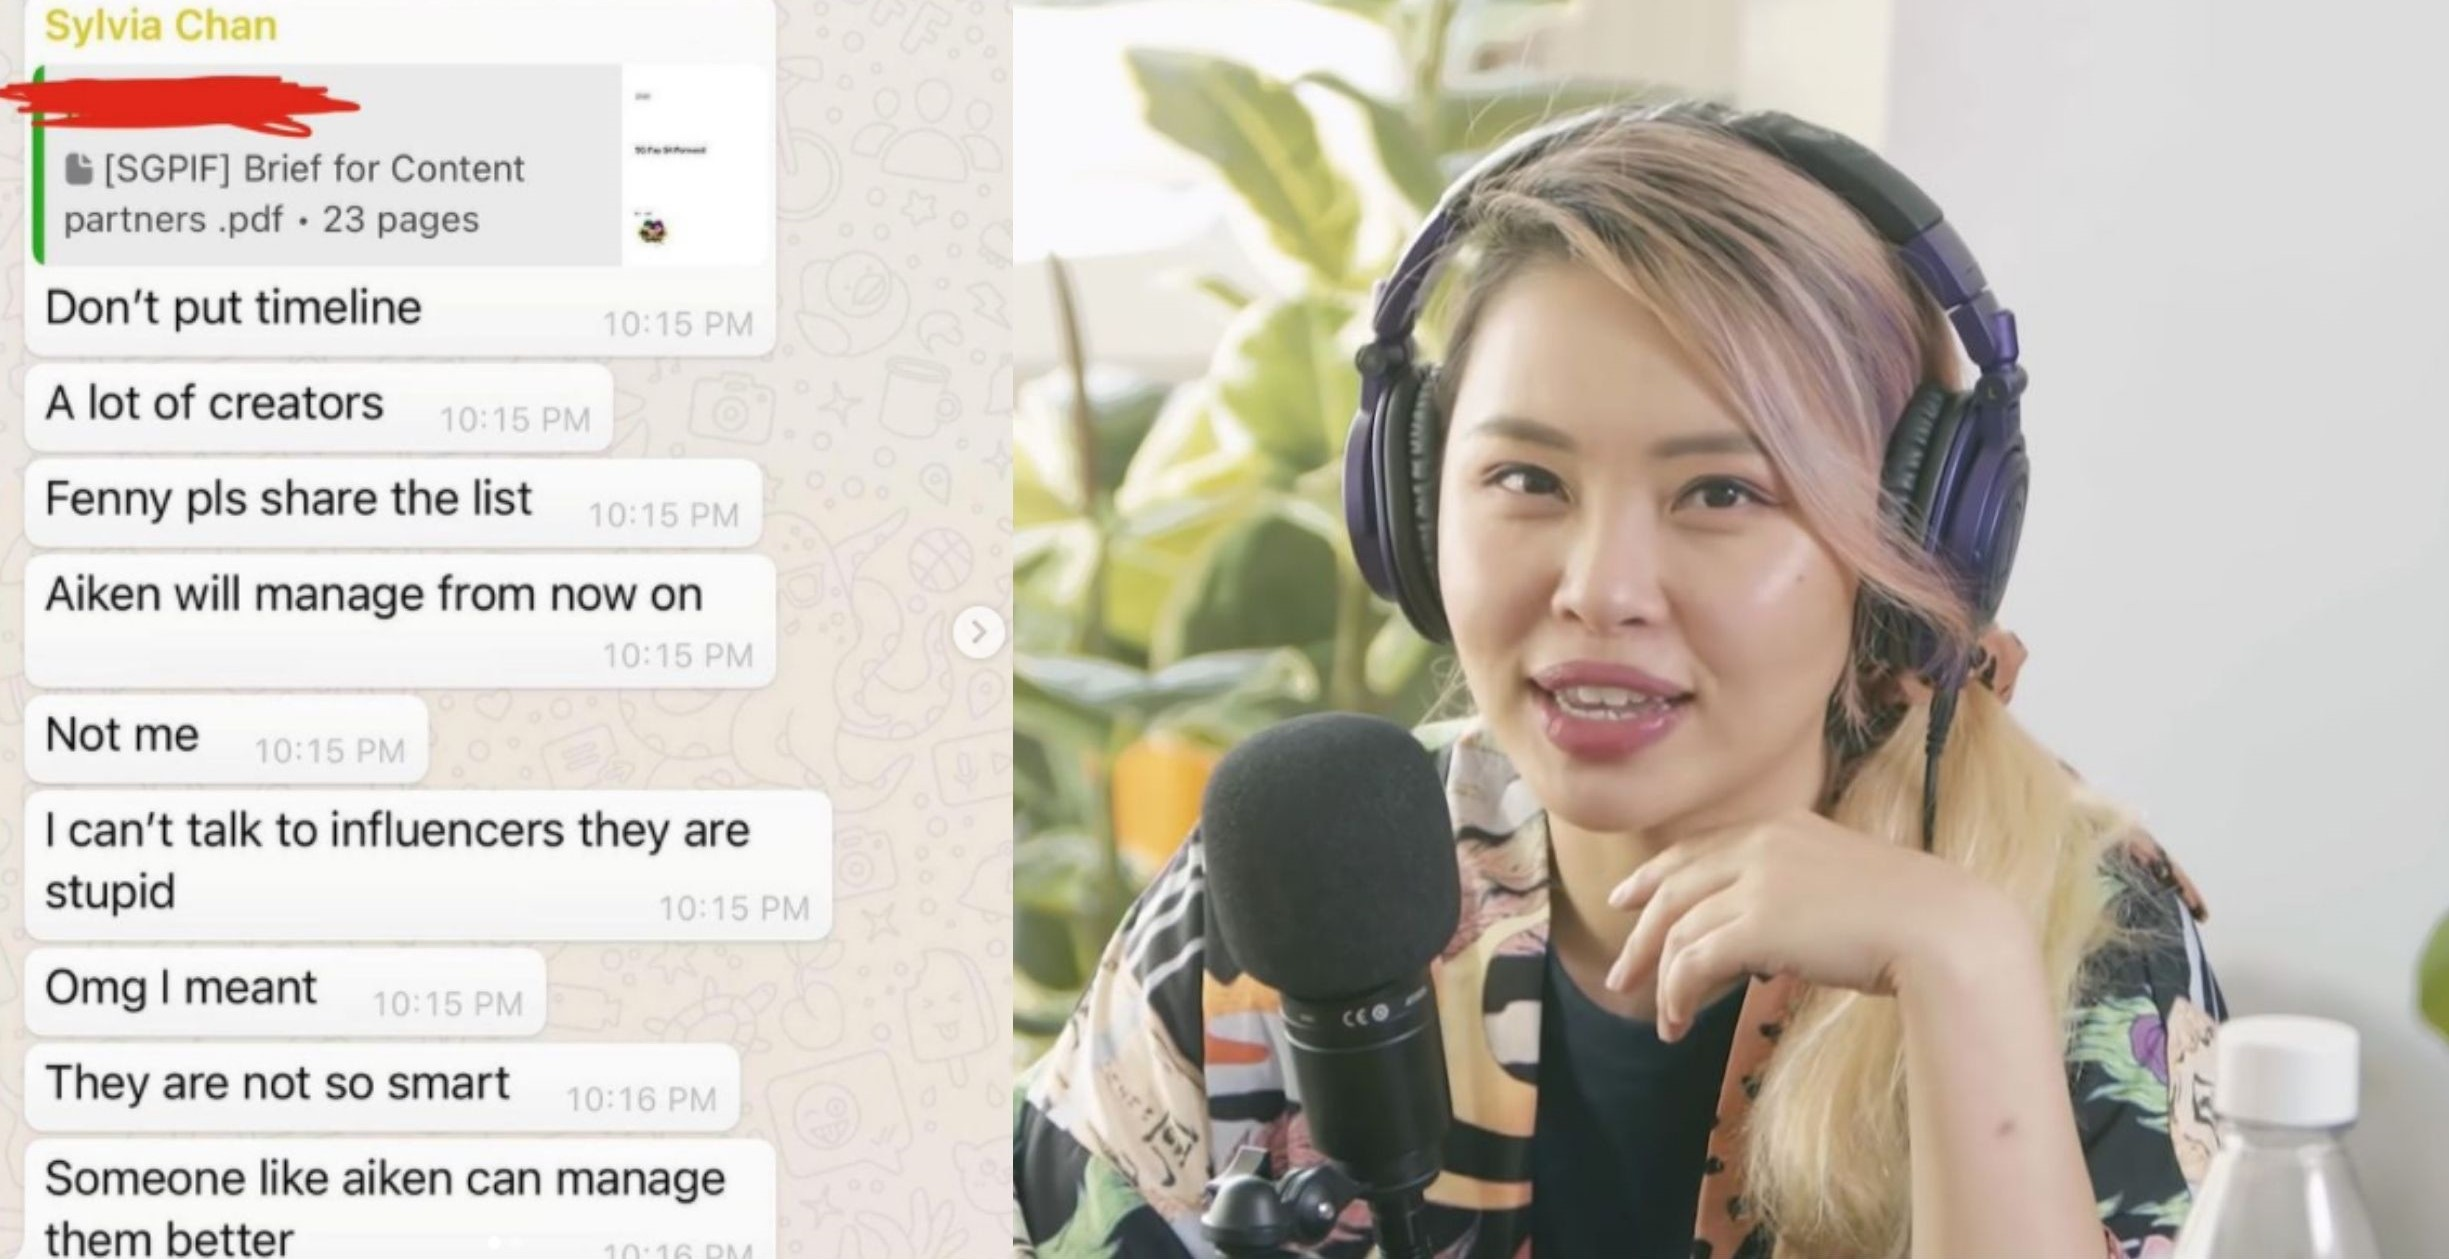 Night Owl Cinematic's Sylvia Chan Under Fire For Being Abusive Towards Employees